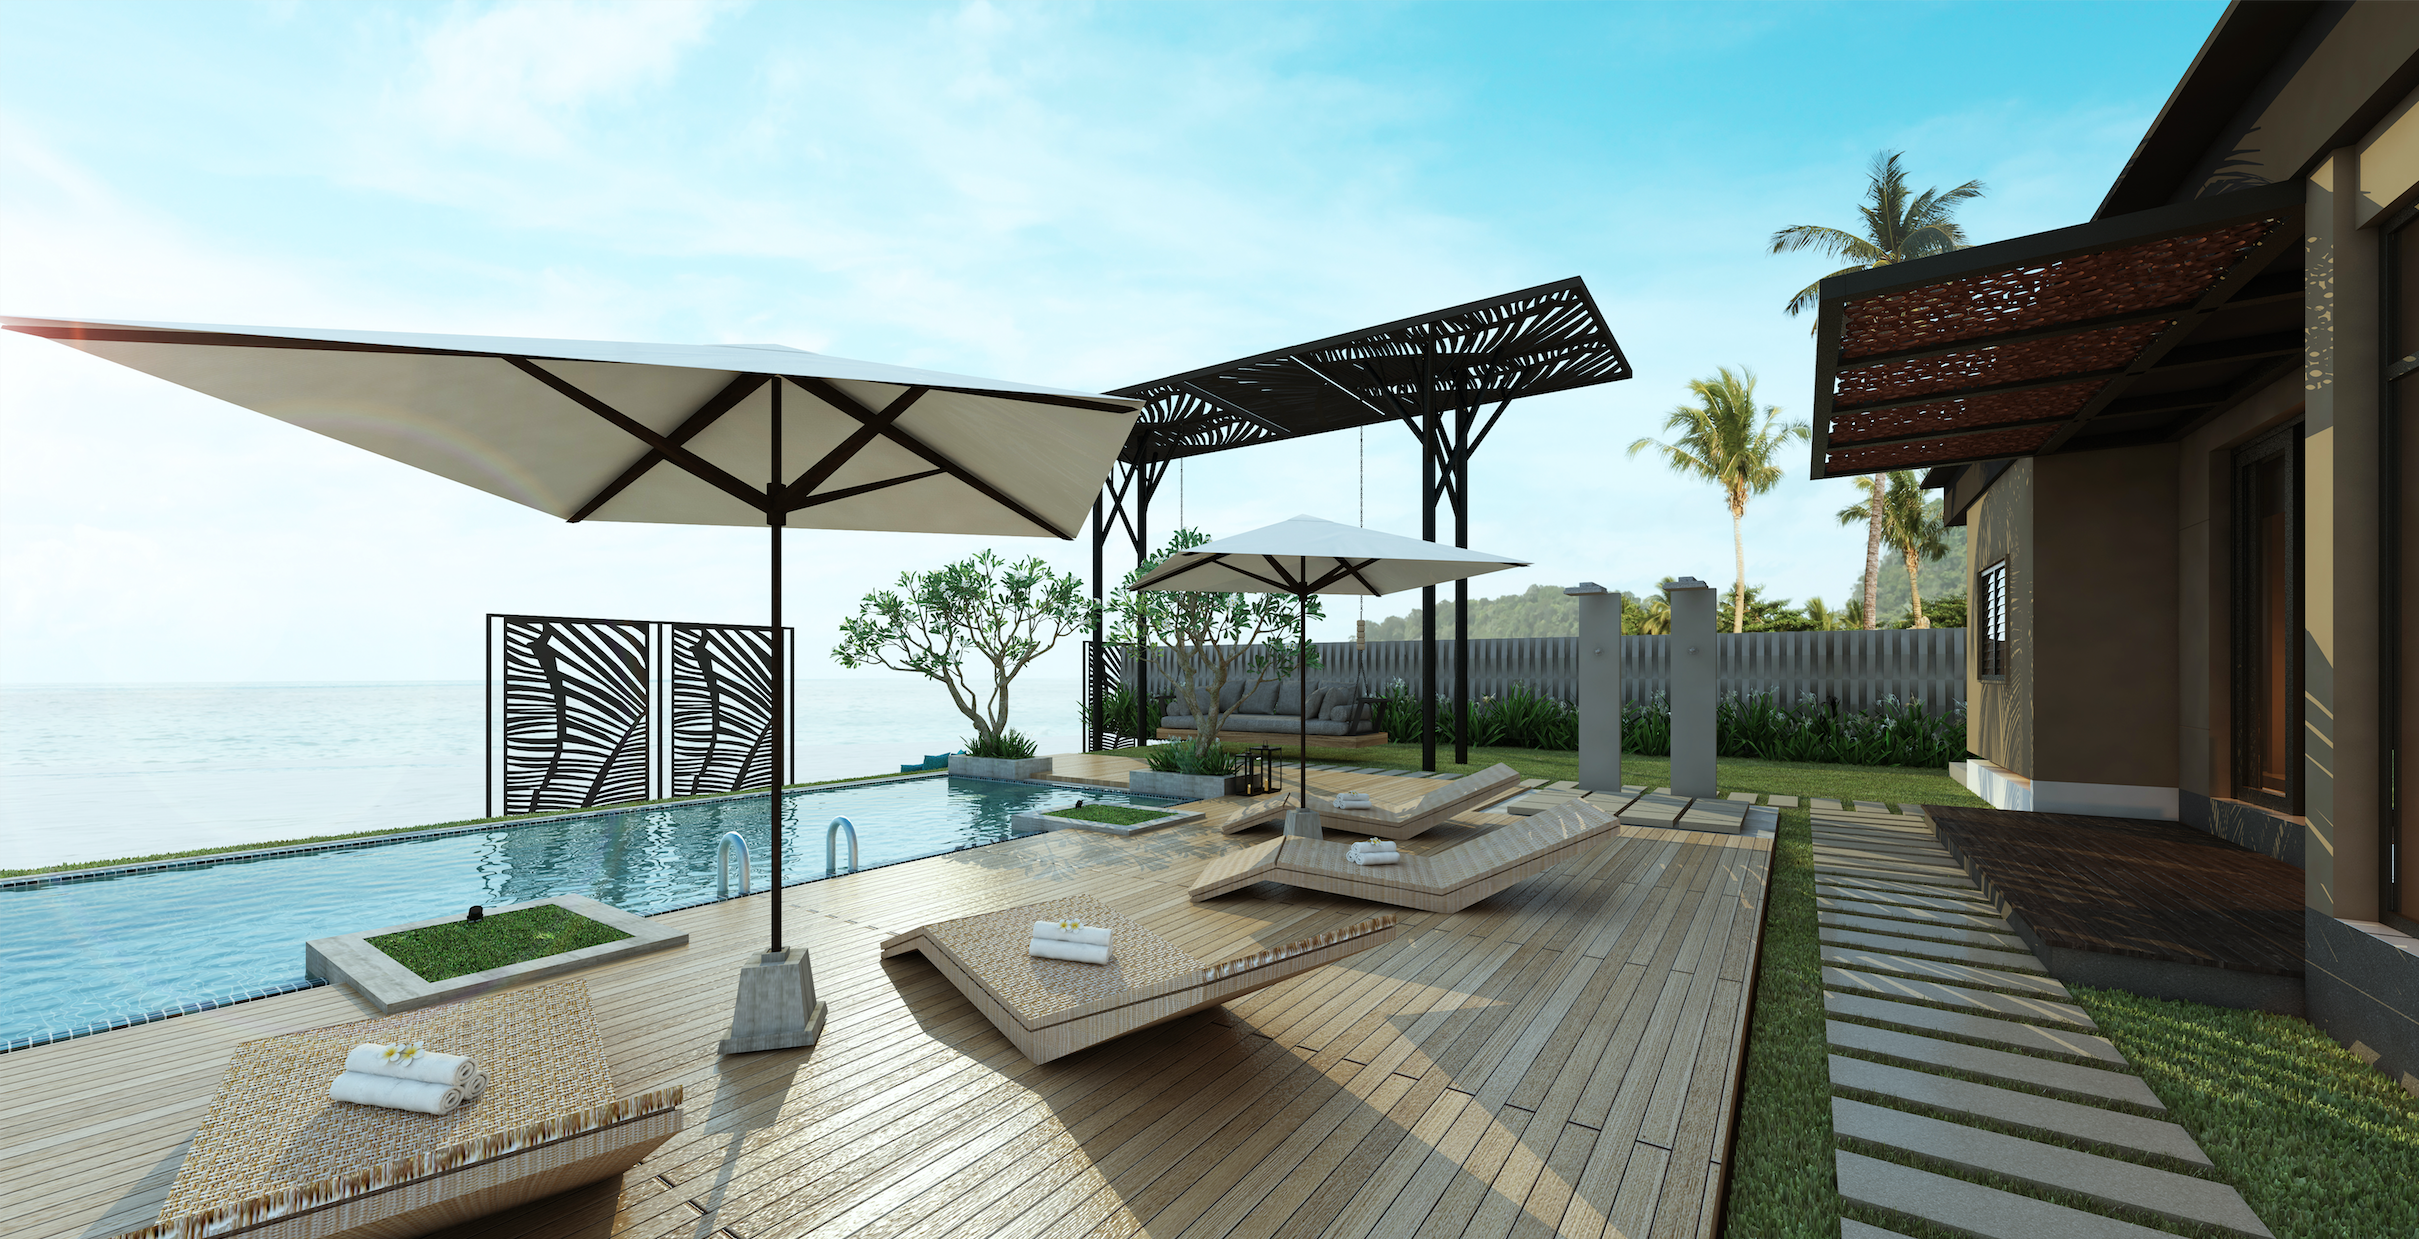 Pool Deck Ideas - Pool Deck Design Tips Pool House Entertainment Combination And Designs on house and pool house, house and inground pool, house and furniture, kitchen and pool design, house and trees, yard and pool design,